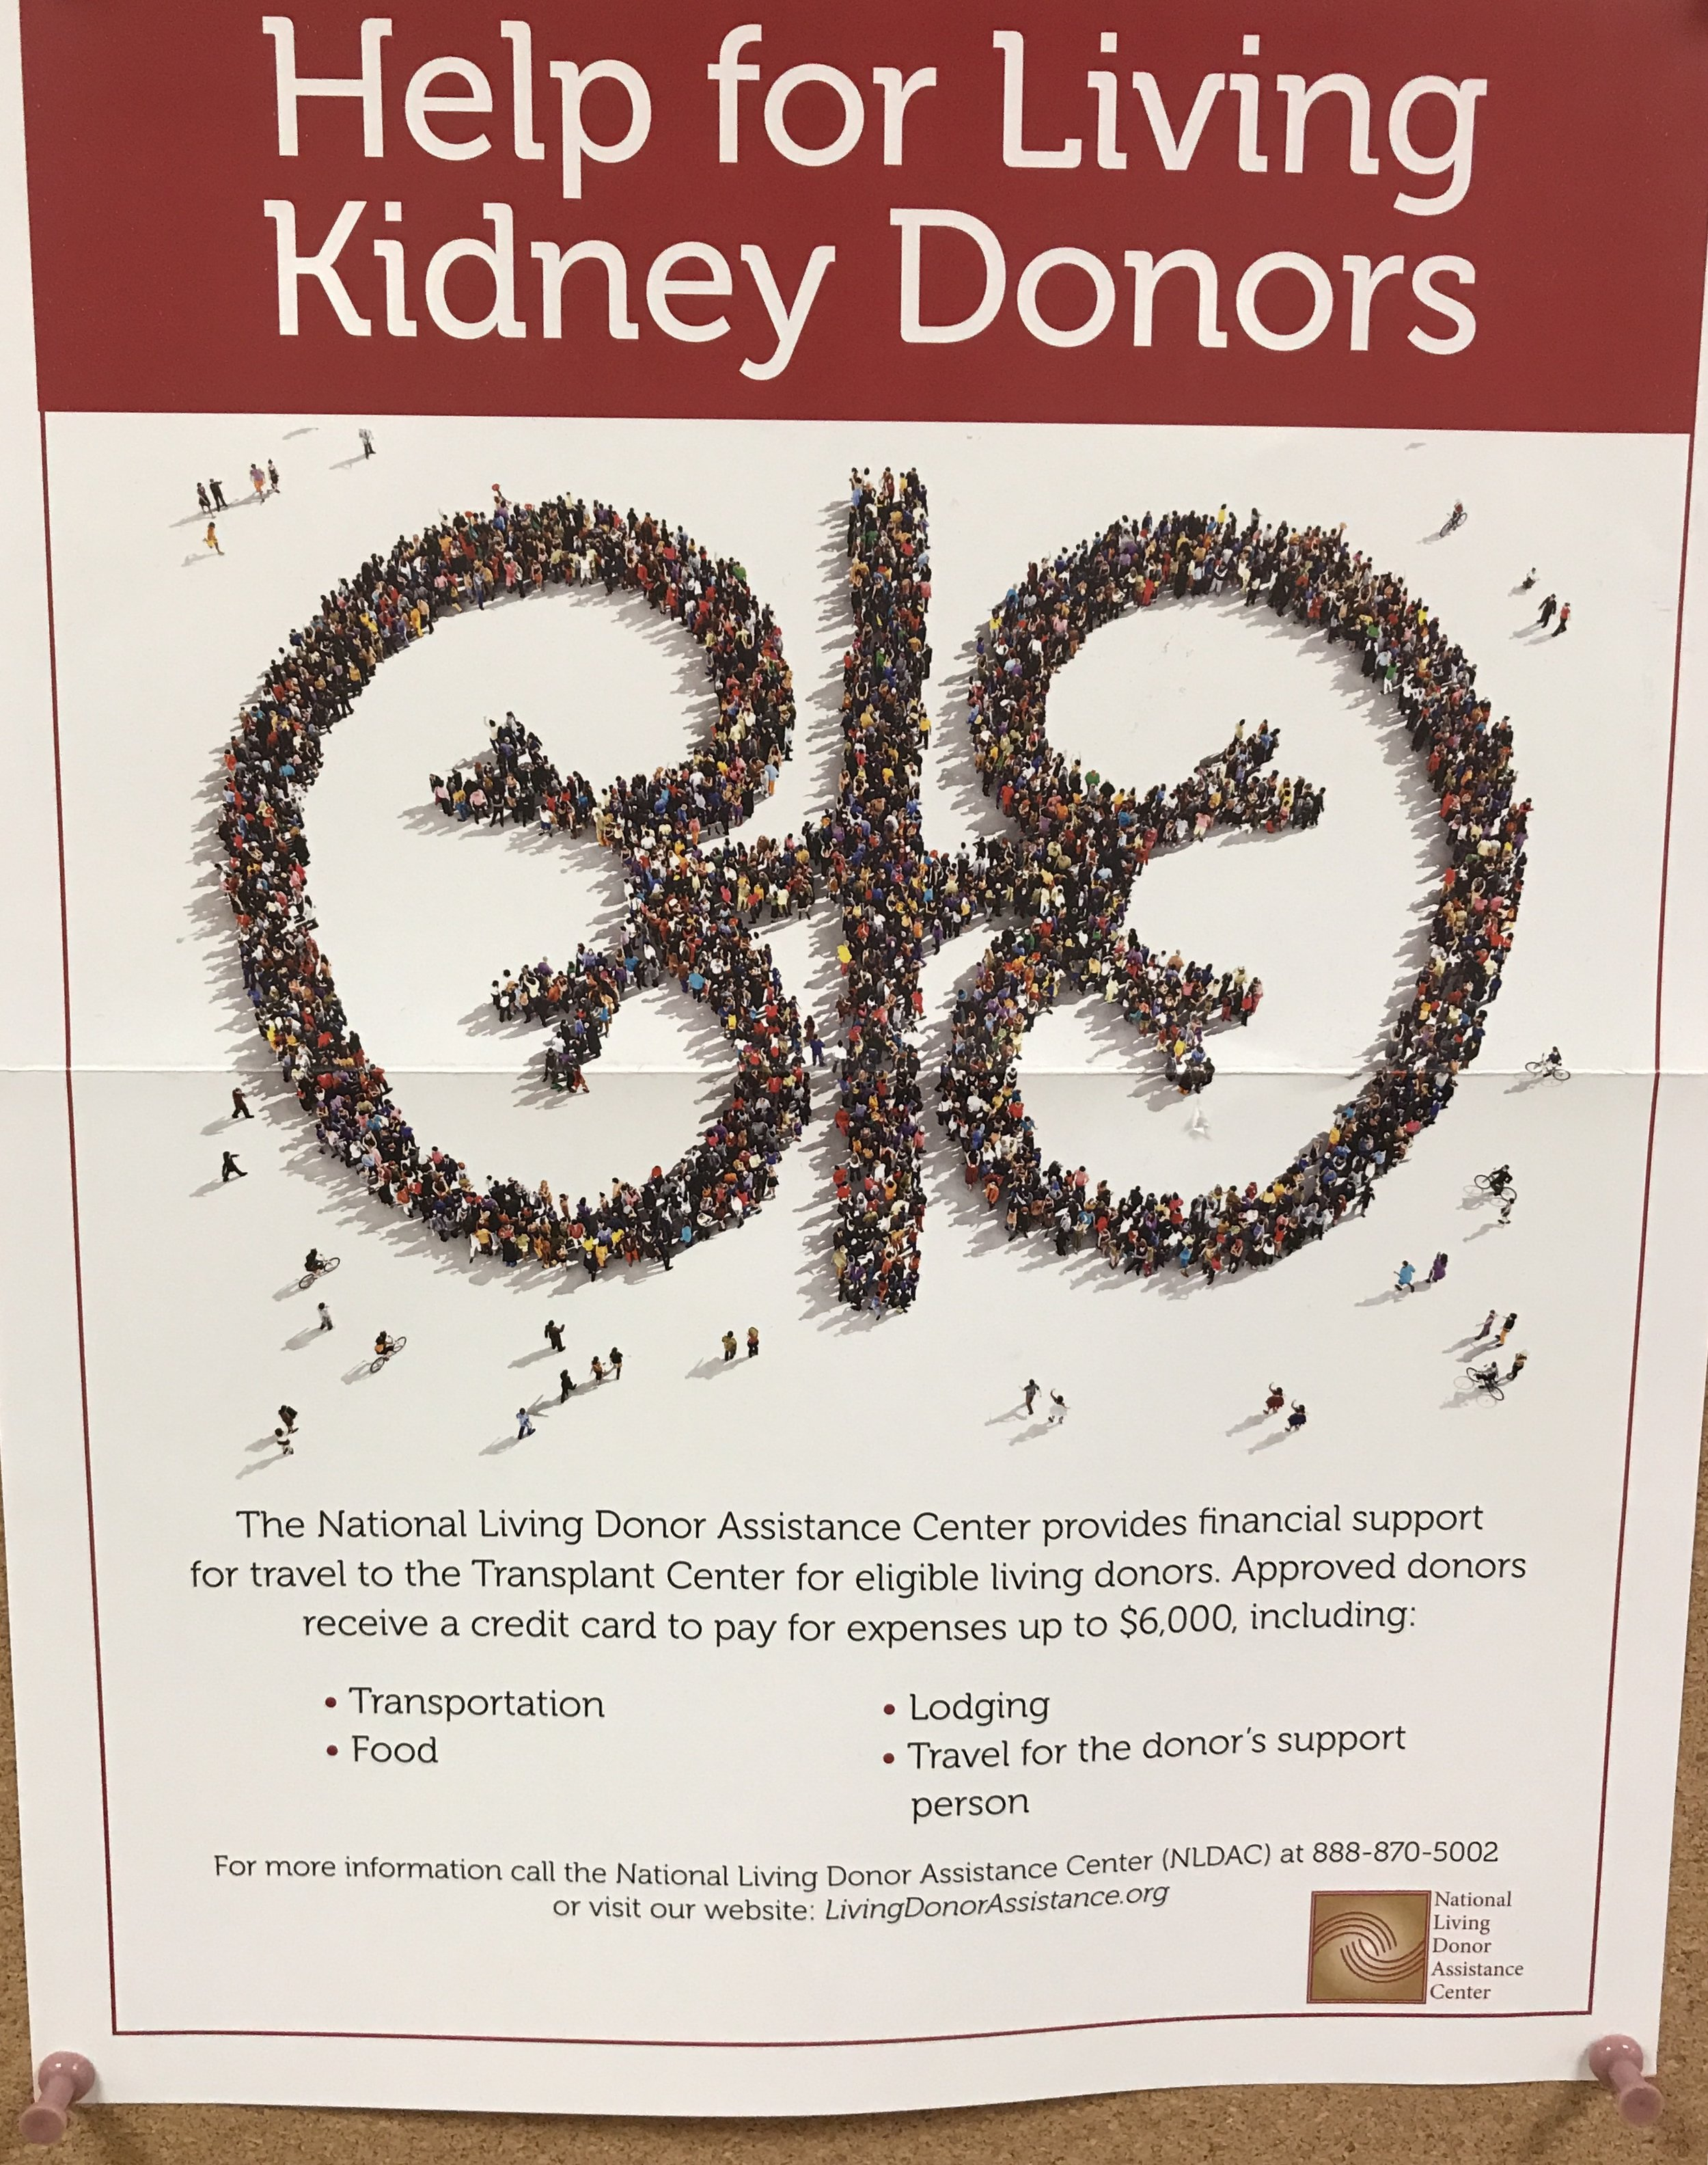 Did you know? - The National Living Donor Assistance Center provides financial support for travel to the Transplant Center for eligible living donors!